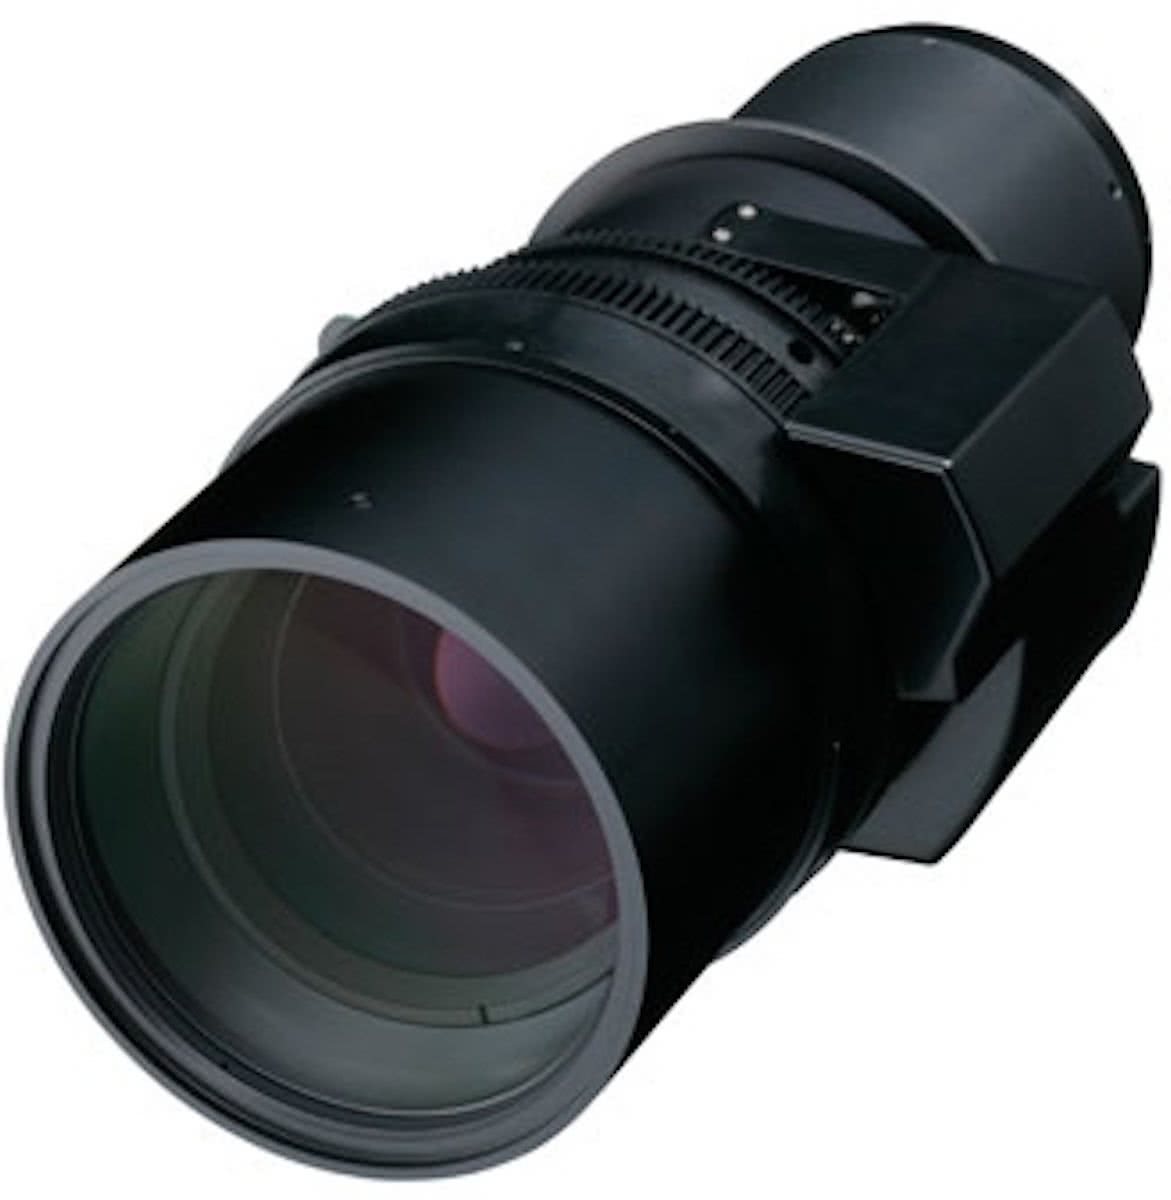 Middle Throw Zoom Lens1 - ELPLM06 for:EB-Z8000 Series